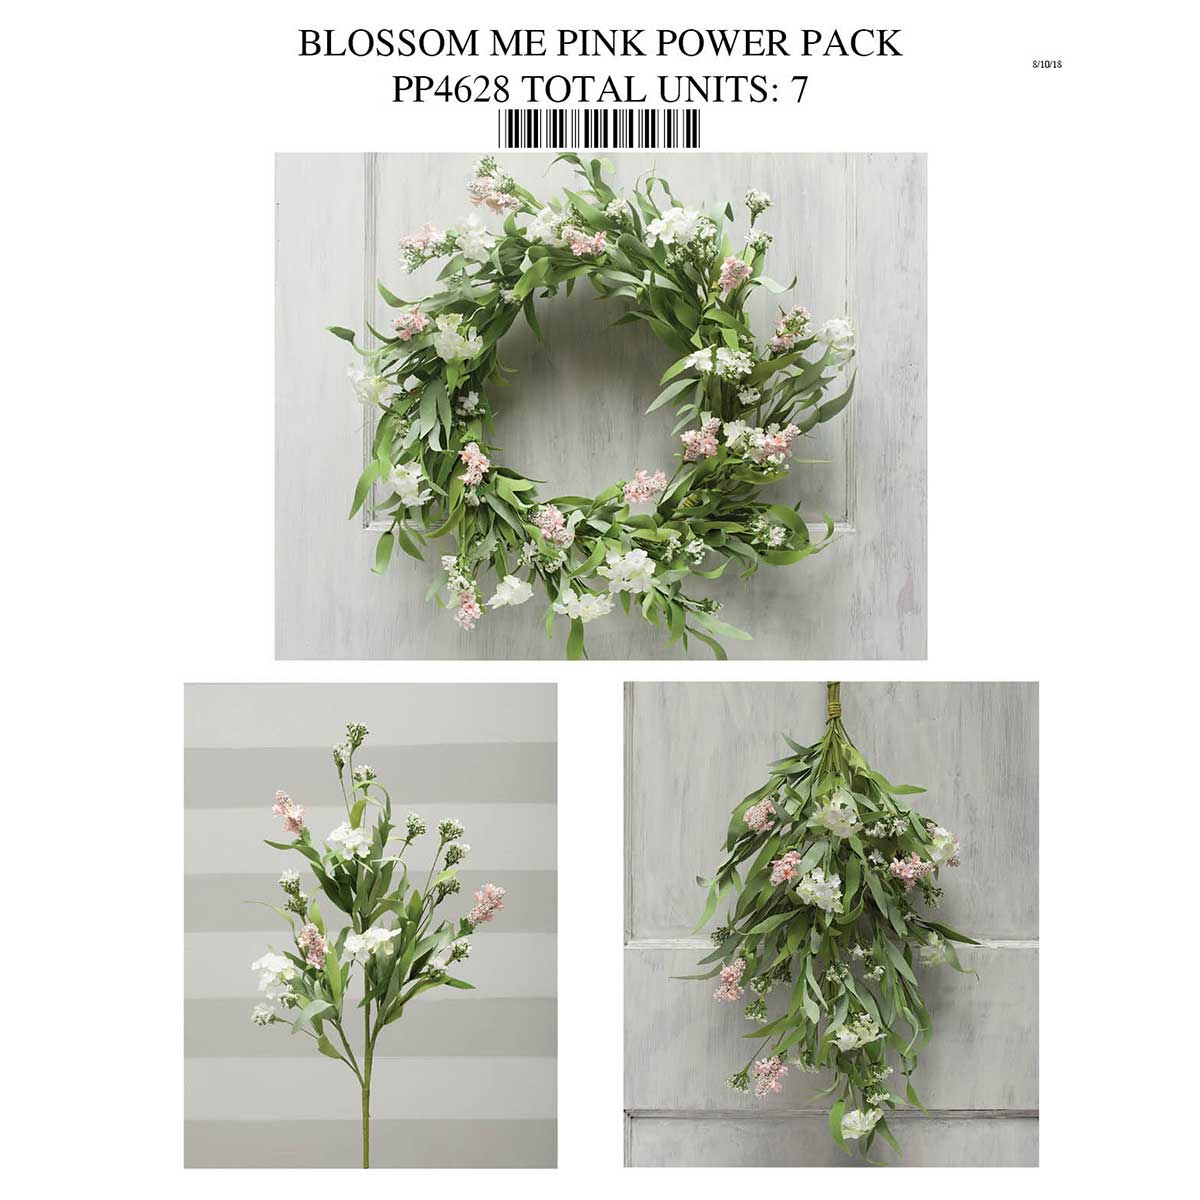 PINK/WHITE BLOSSOM POWER PACK PP4628 - Click Image to Close